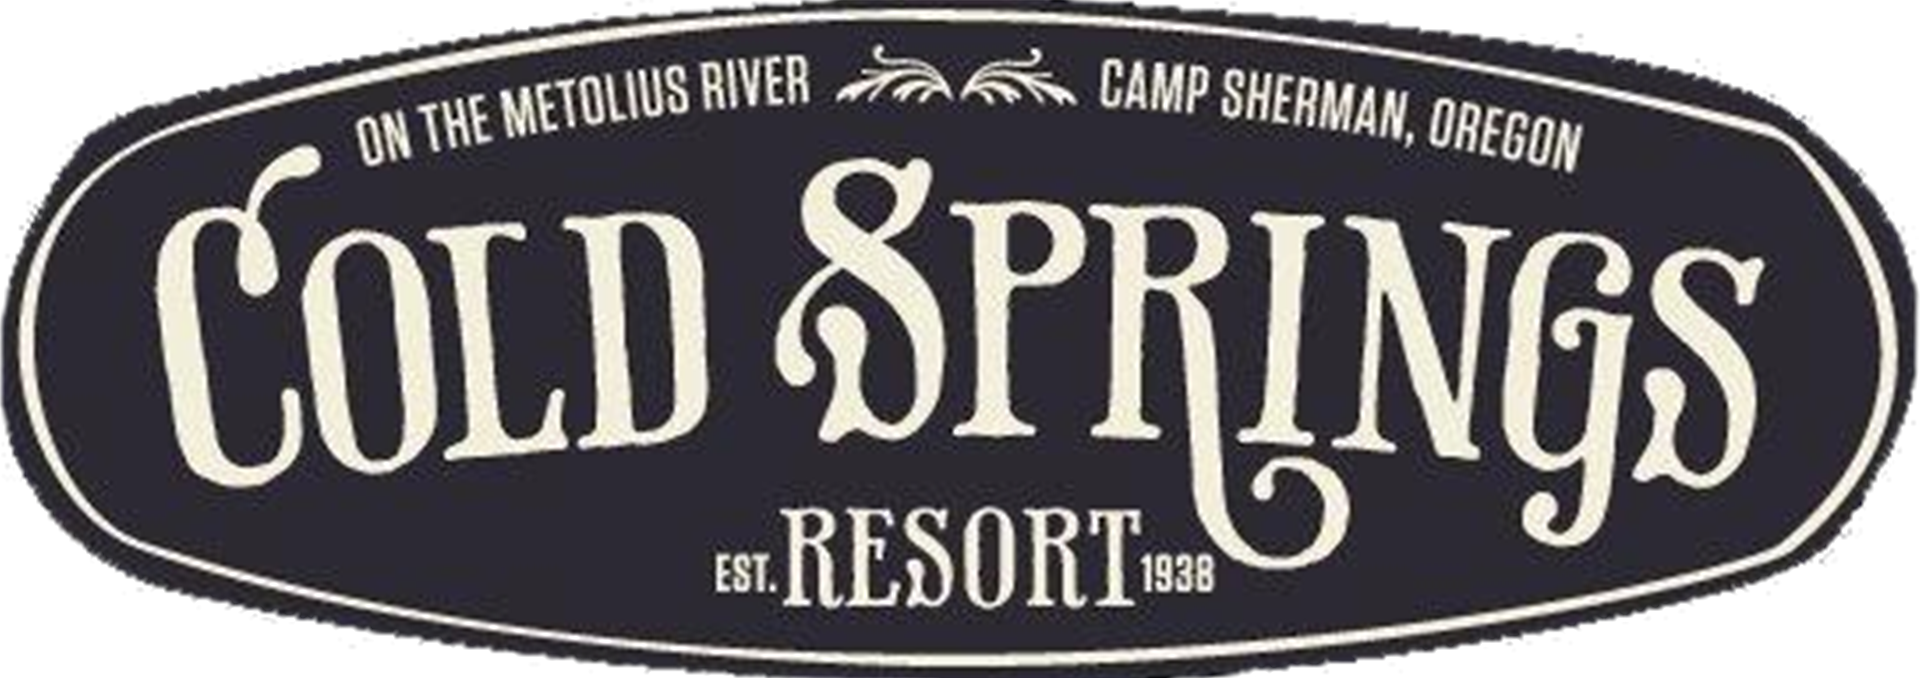 Cold Springs Resort and RV Park in Camp Sherman, Oregon - Cabins for